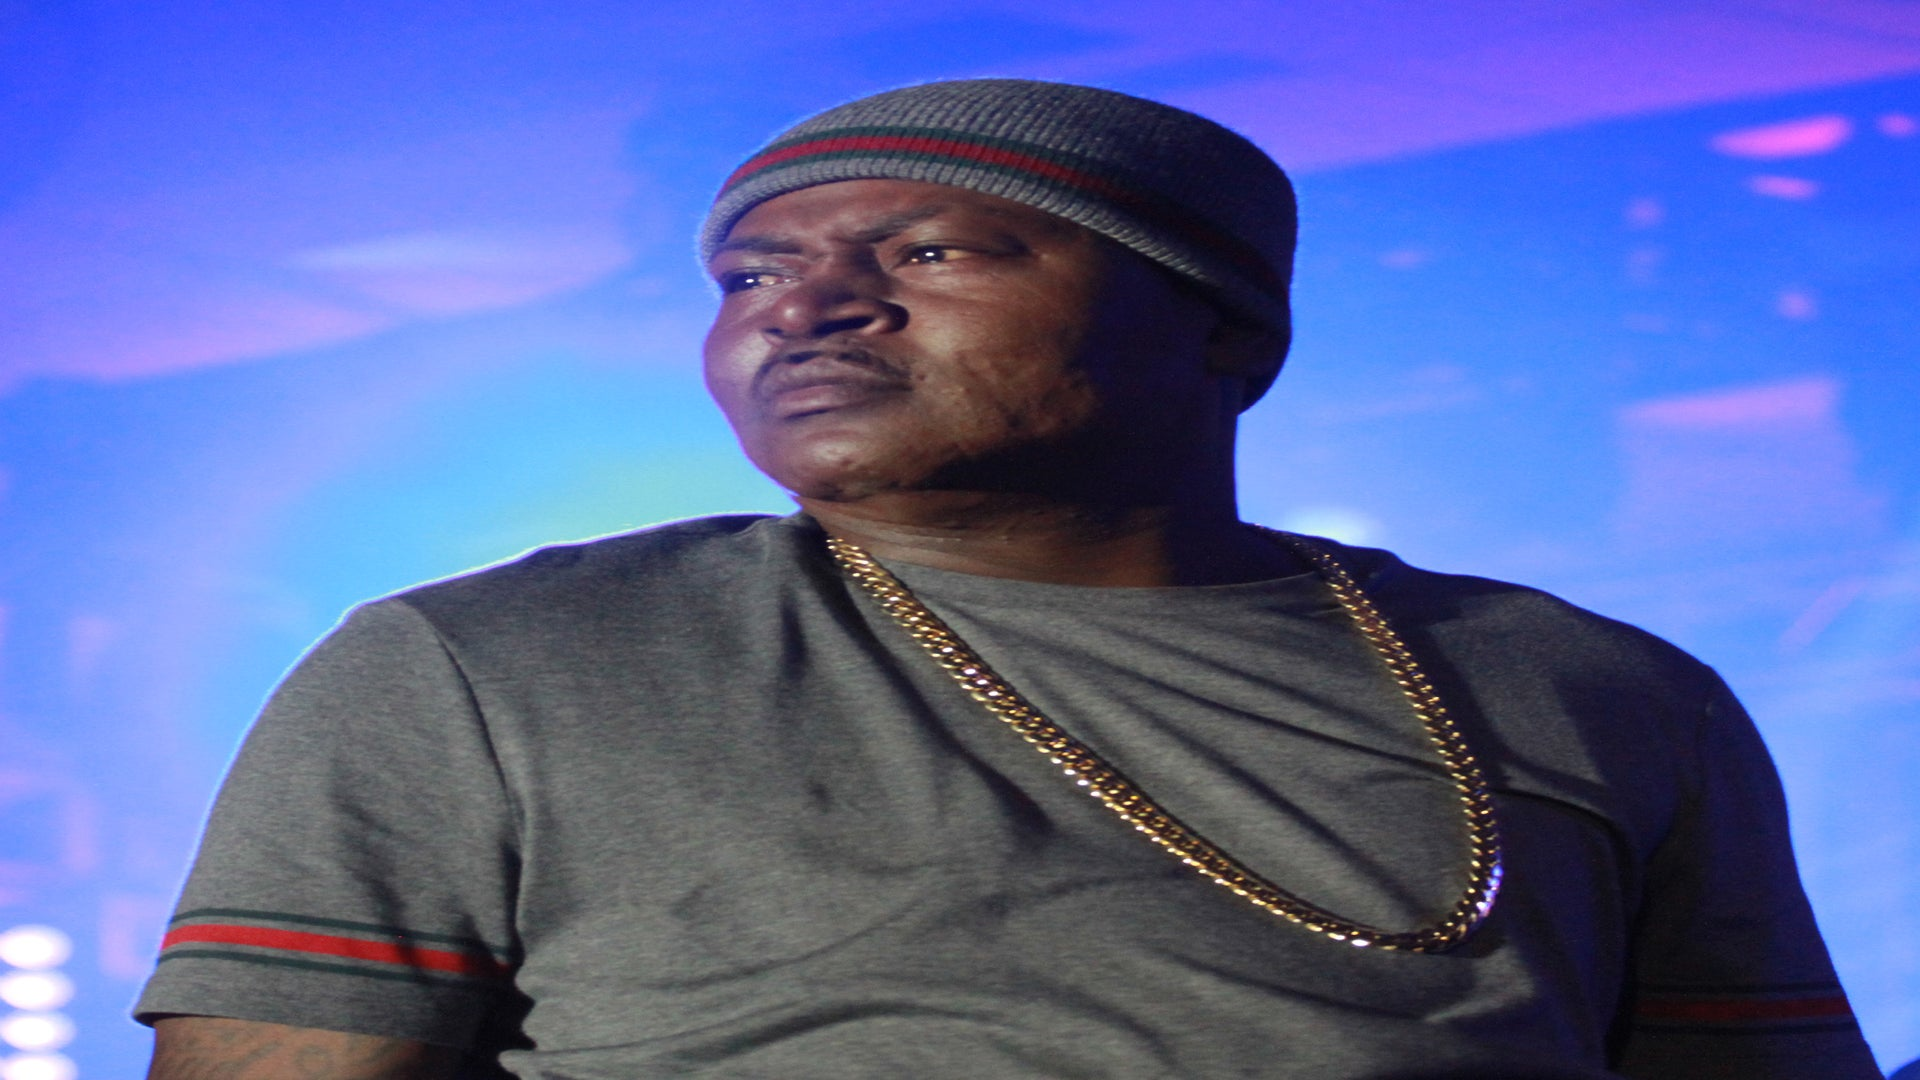 Twitter Goes In On Trick Daddy After Rapper Tells Black Women To 'Tighten Up'